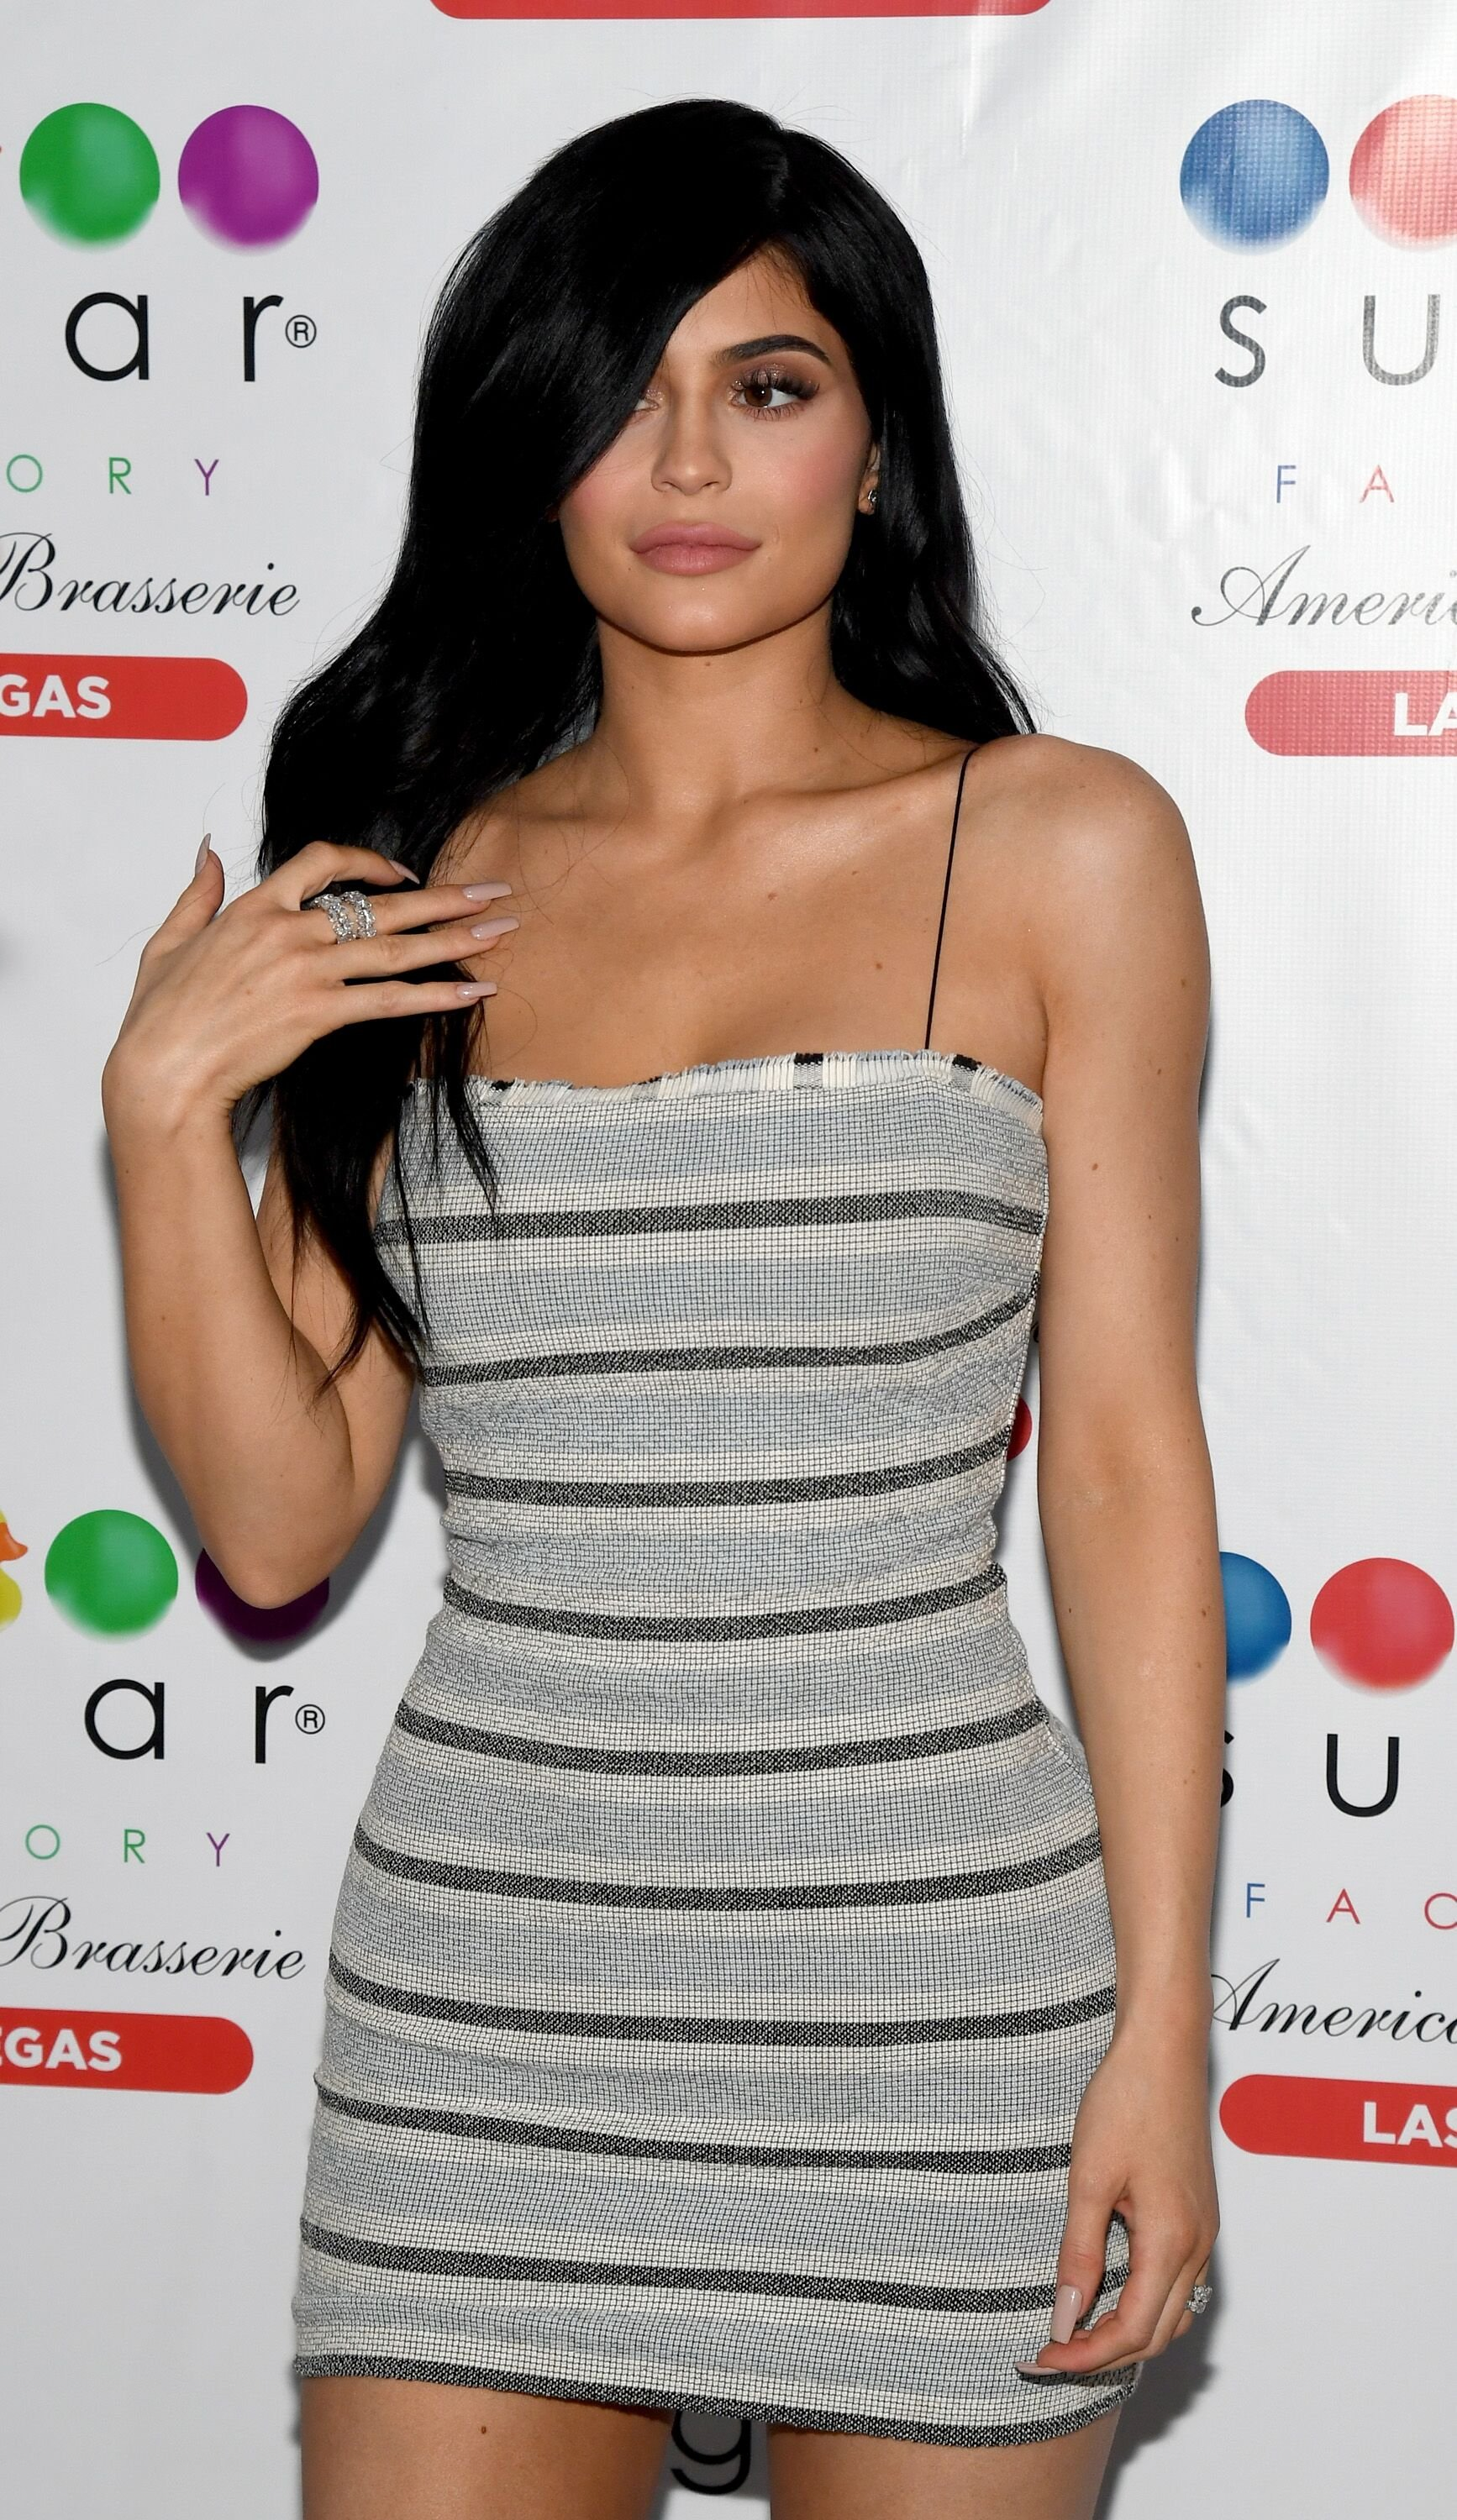 Kylie Jenner poses inside Sugar Factory American Brasserie at the Fashion Show mall on April 22, 2017. | Source: Getty Images